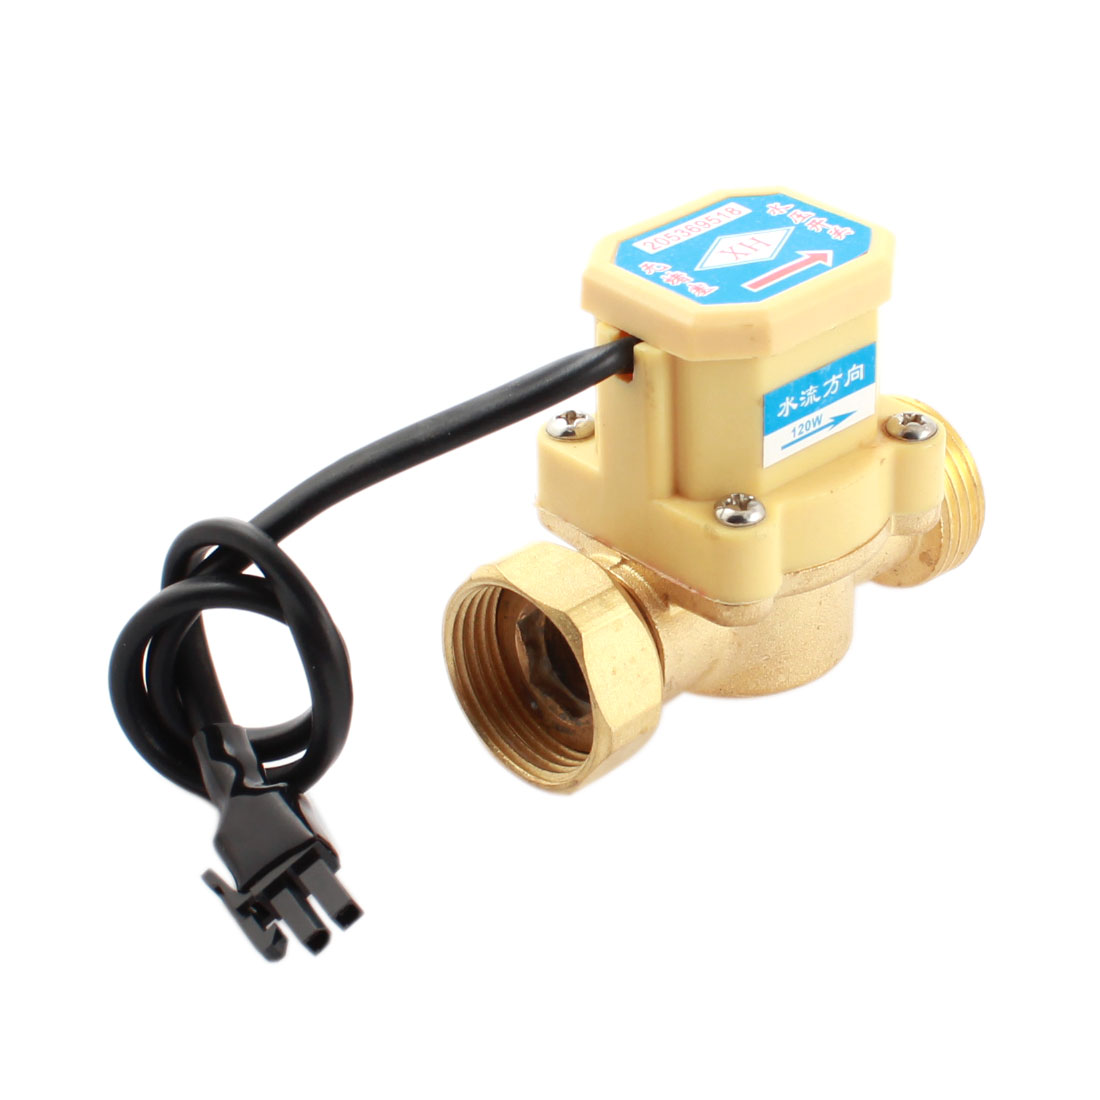 DC 5-18V 120W 3/4PT Male Female Thread Water Fluid Flow Sensor Controller Switch 0.6Mpa 0.75-5L/min